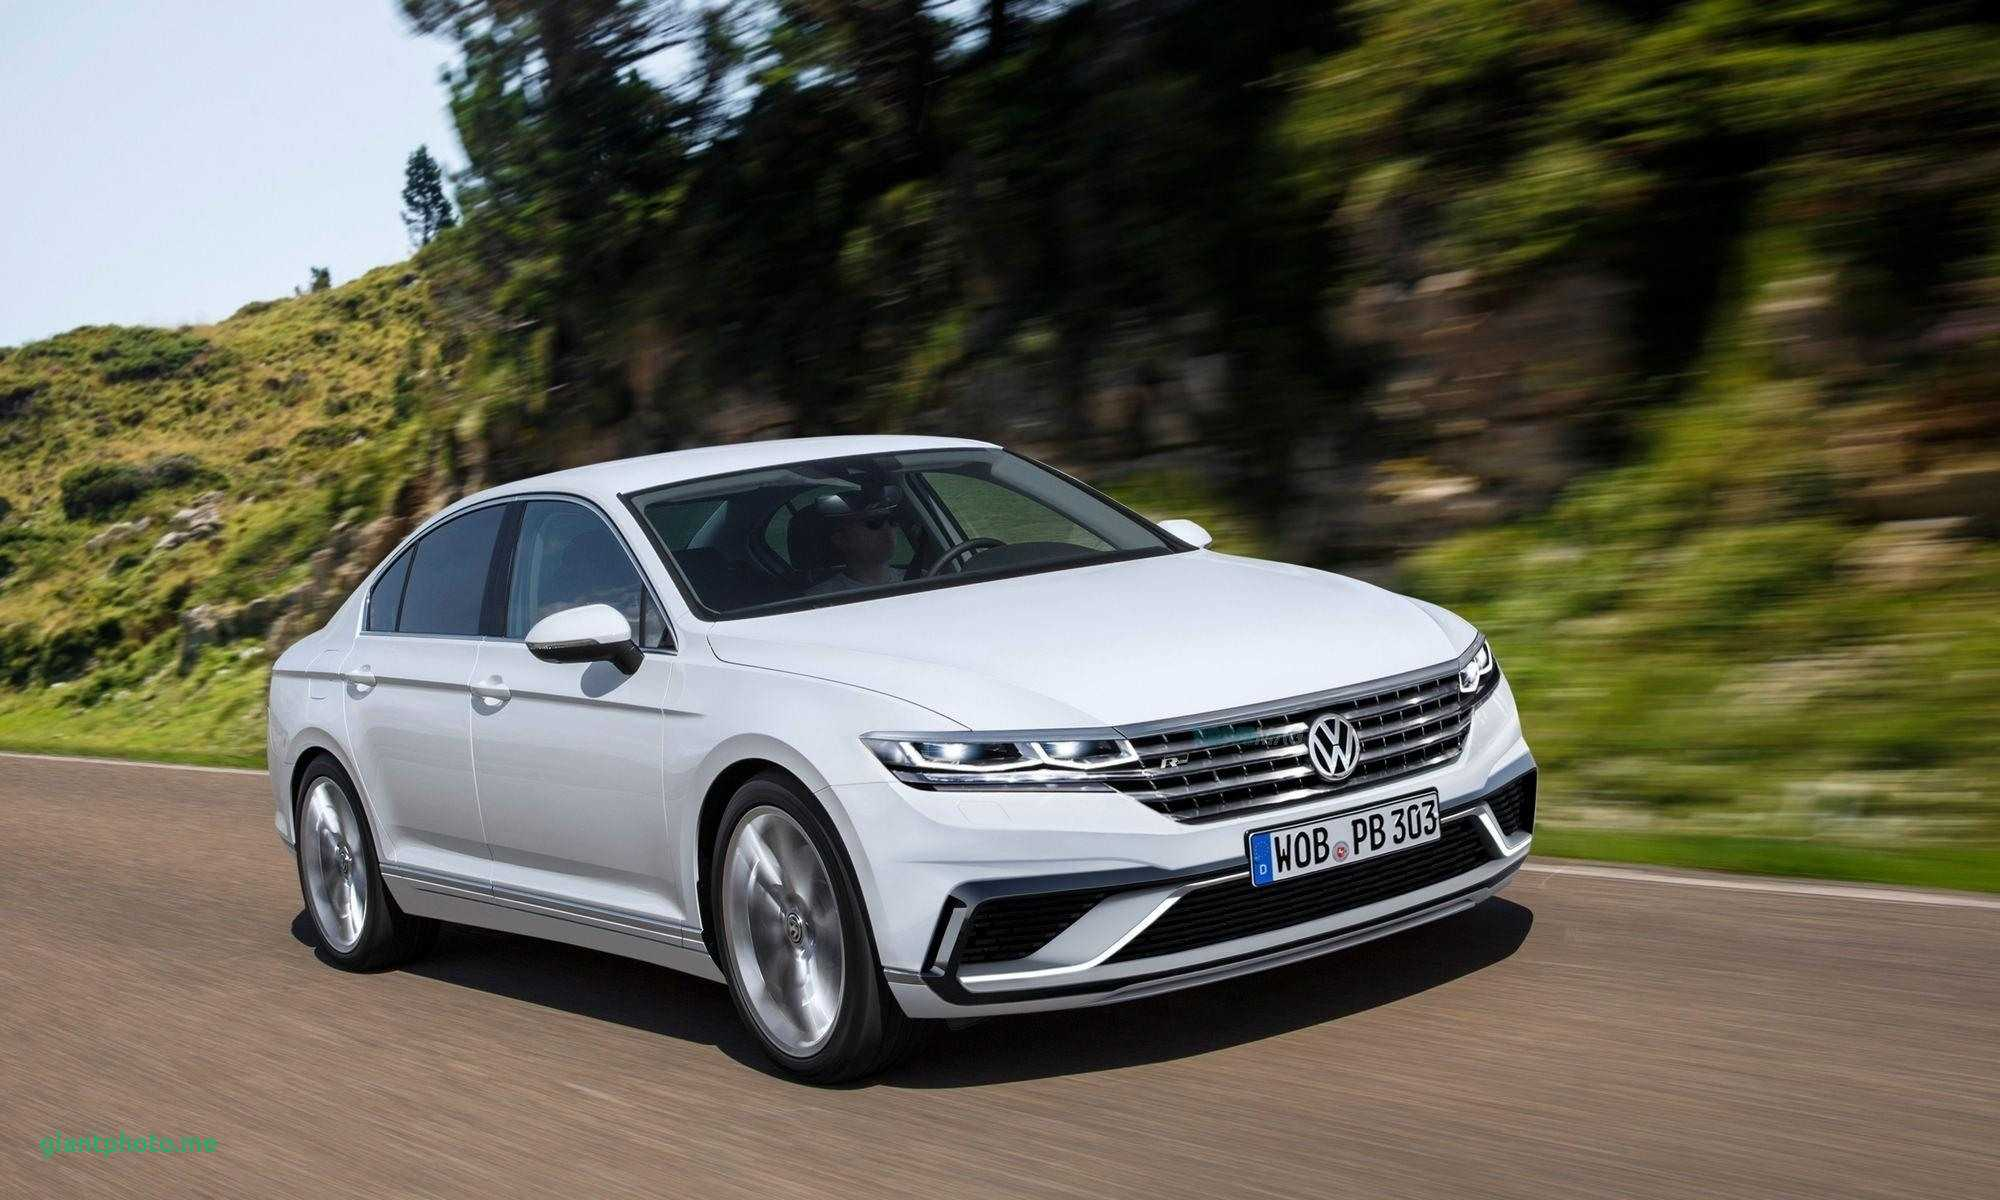 81 All New Next Generation Vw Cc Release Date